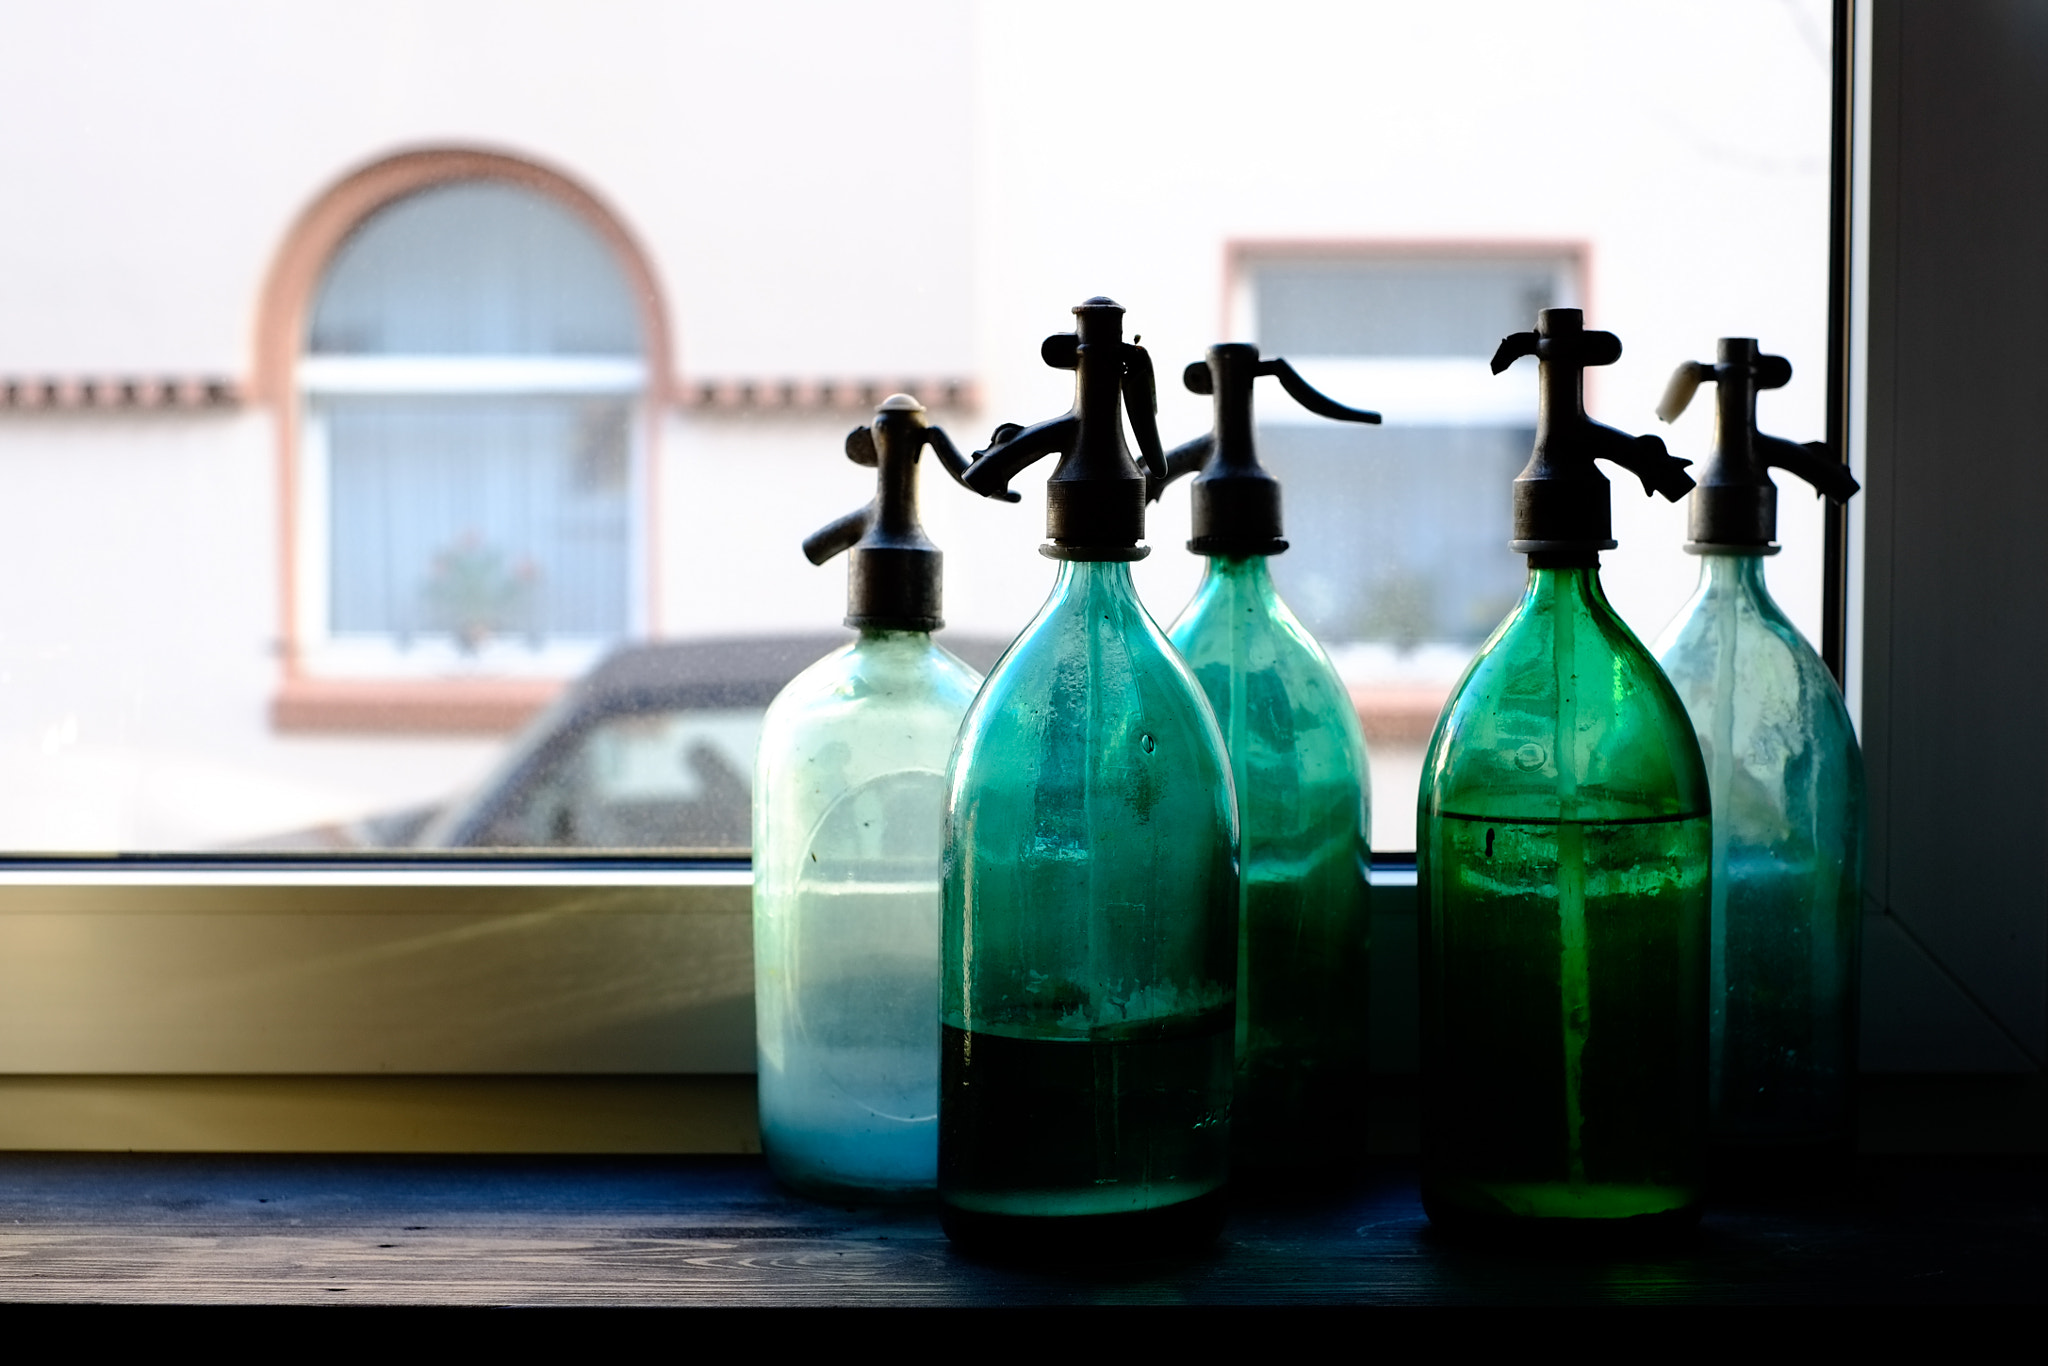 Photograph Siphons in the Window by Edwin van Nuil on 500px